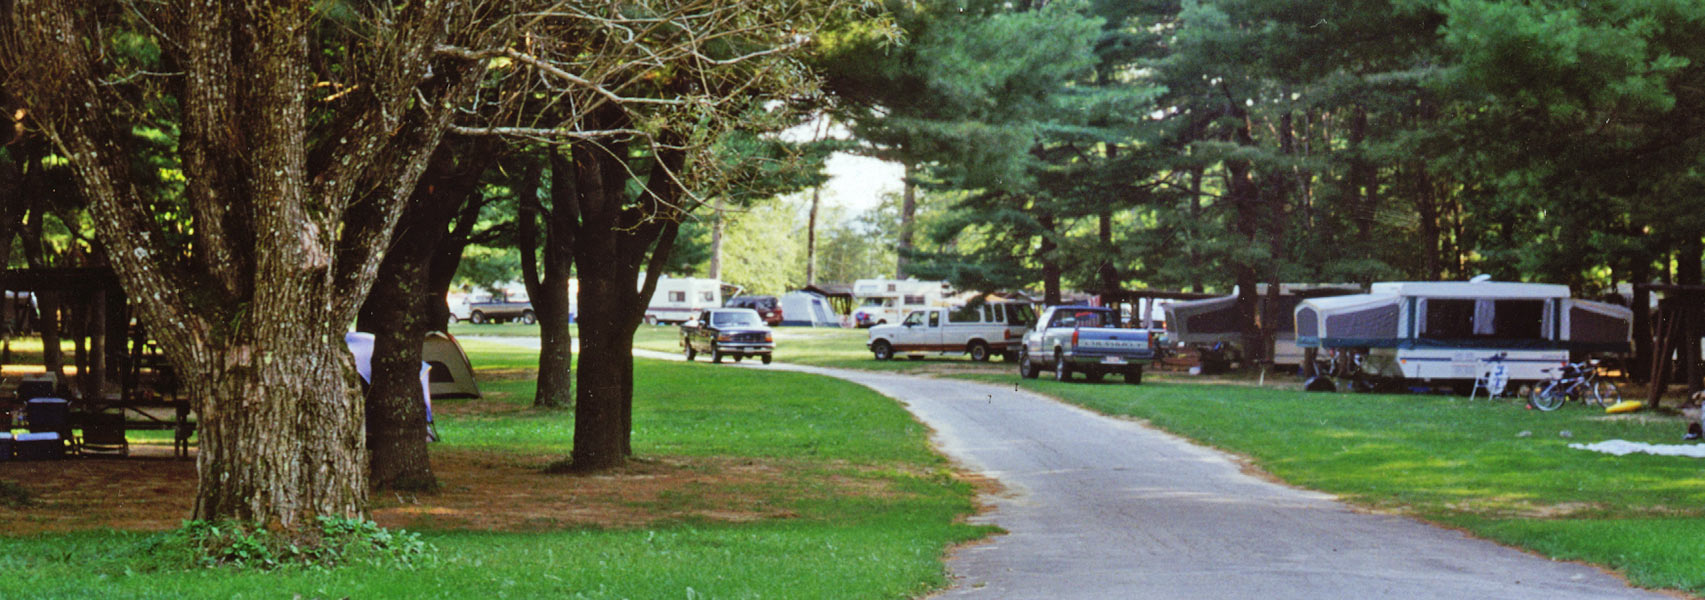 Campsites Tents RVs Pop-Ups at Eastern Slope Camping Area